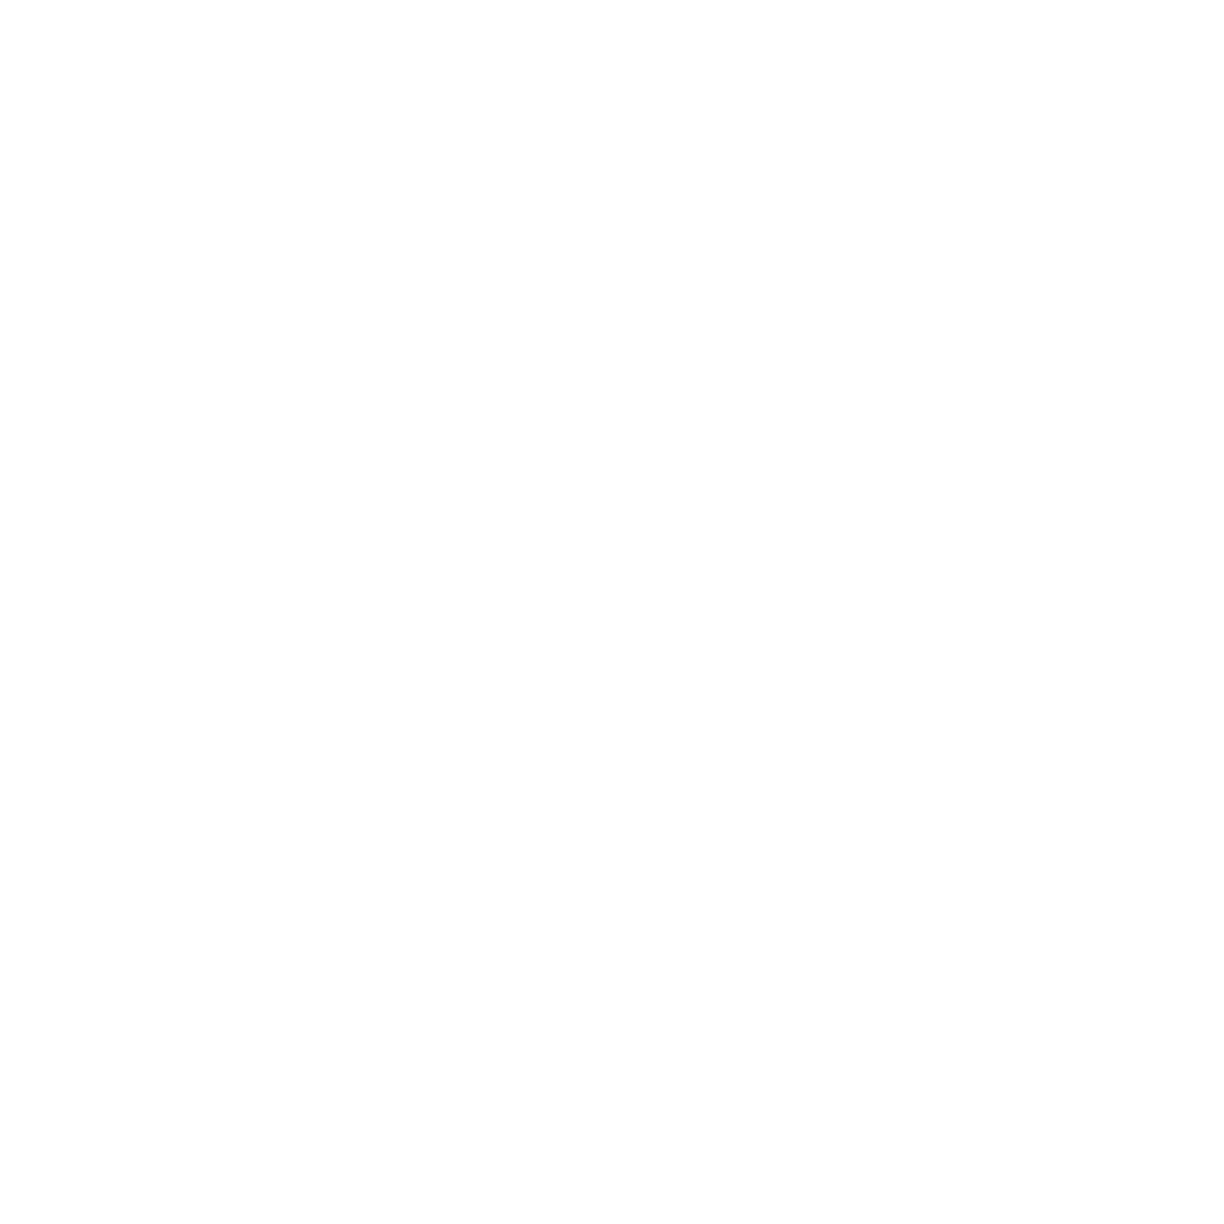 FFFEST - Screenings and Panels Celebrating Women Filmmakers